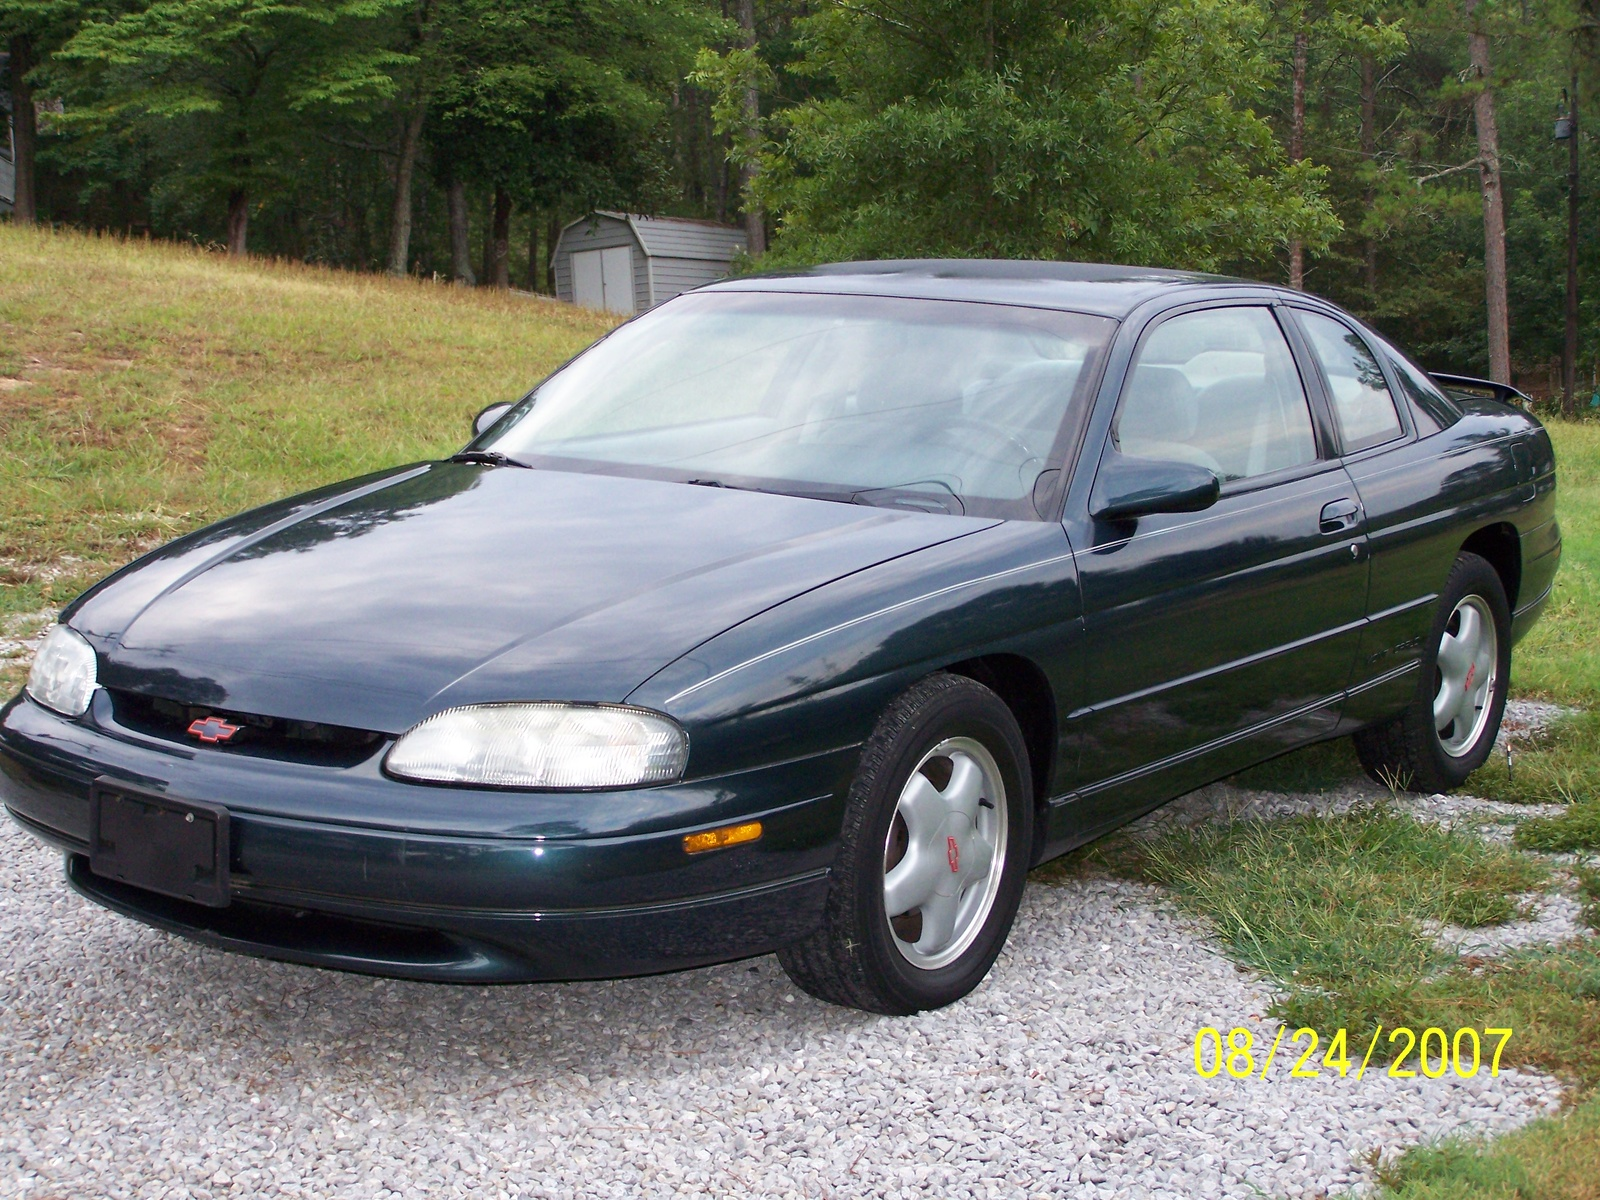 Picture of 1995 Chevrolet Monte Carlo 2 Dr Z34 Coupe